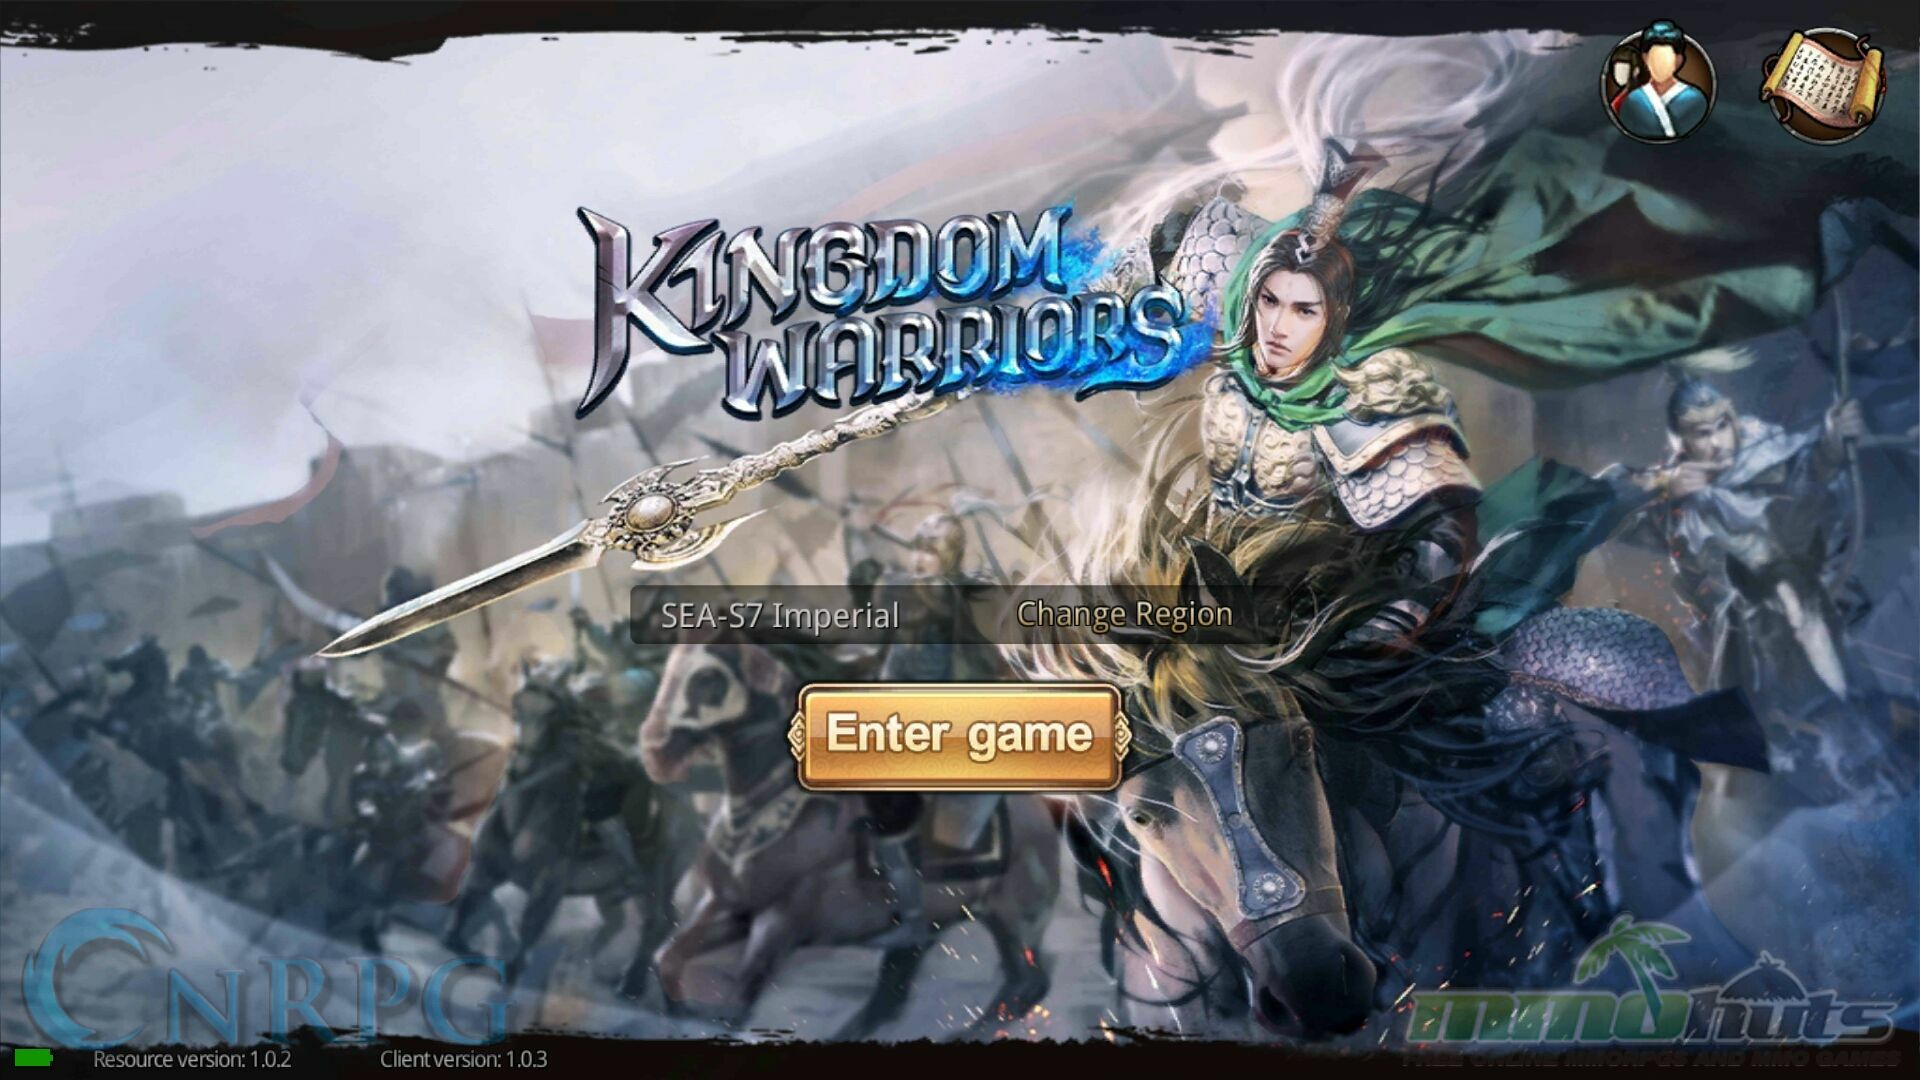 Kingdom Warriors Review